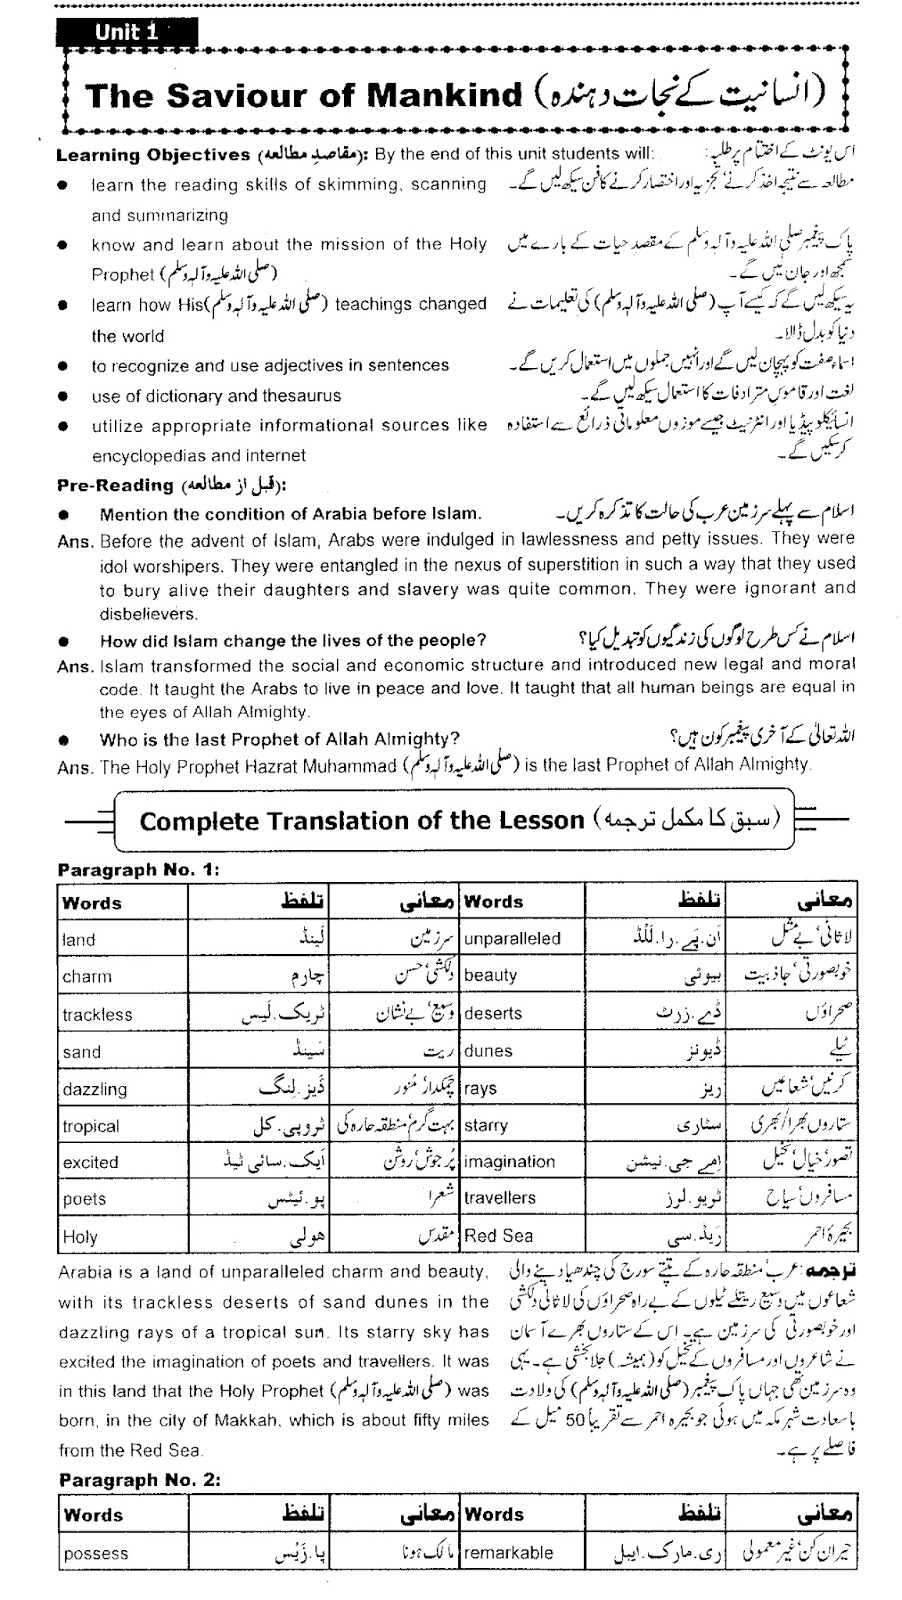 worksheet Mankind The Story Of All Of Us Worksheet Answers ba english notes puuosiub 9th class lesson the saviour of mankind complete translation and questionanswers